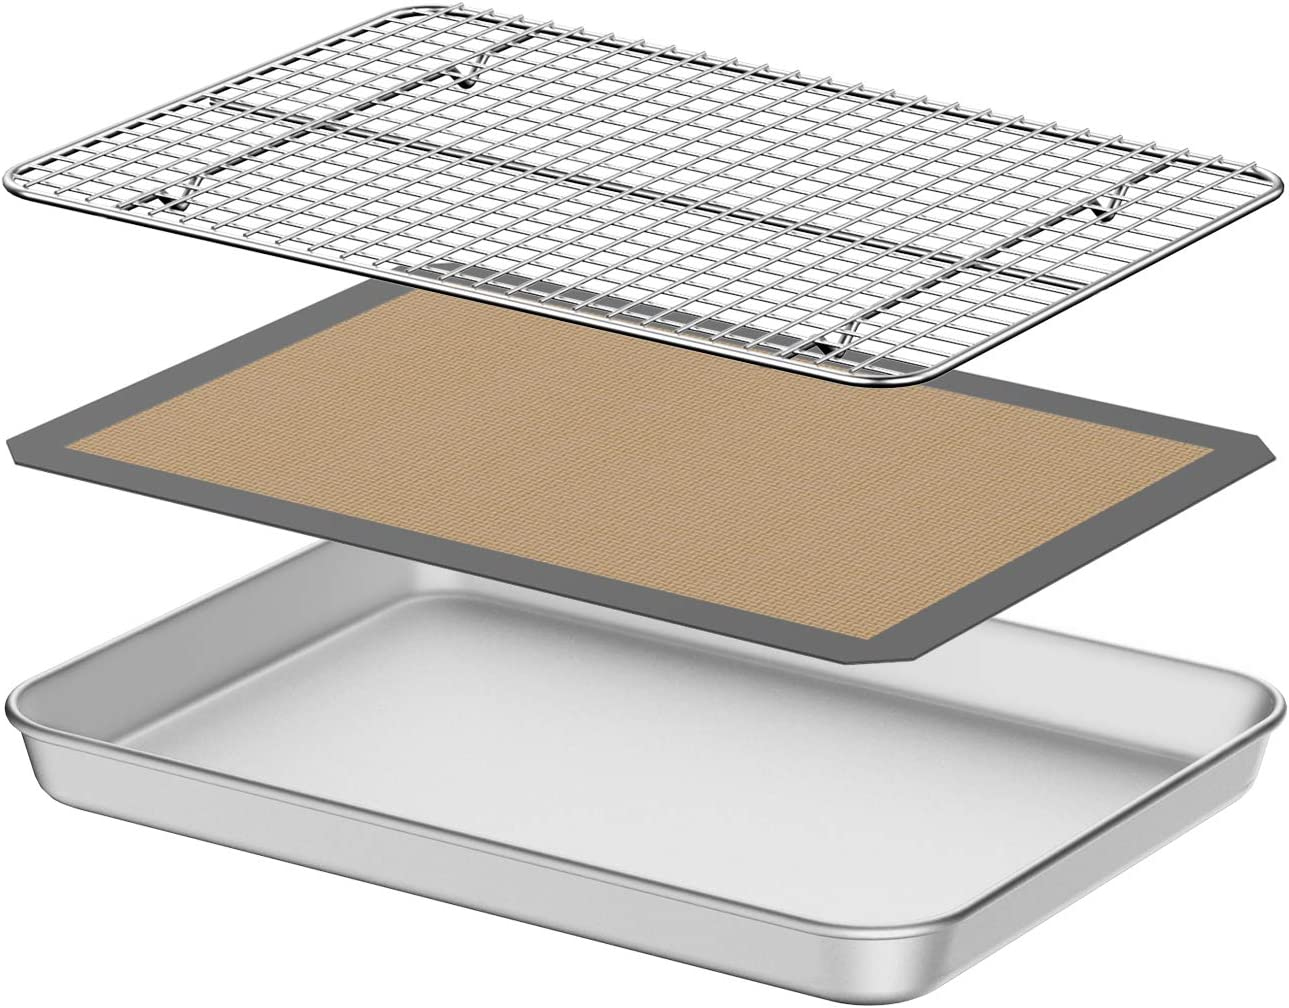 Baking Sheet with Silicone Mat, Umite Chef 9 inch Cookie Sheet Baking Pan, Non Toxic Silicone Baking Mat & Stainless Steel Cooling Rack Heavy Duty & Easy Clean